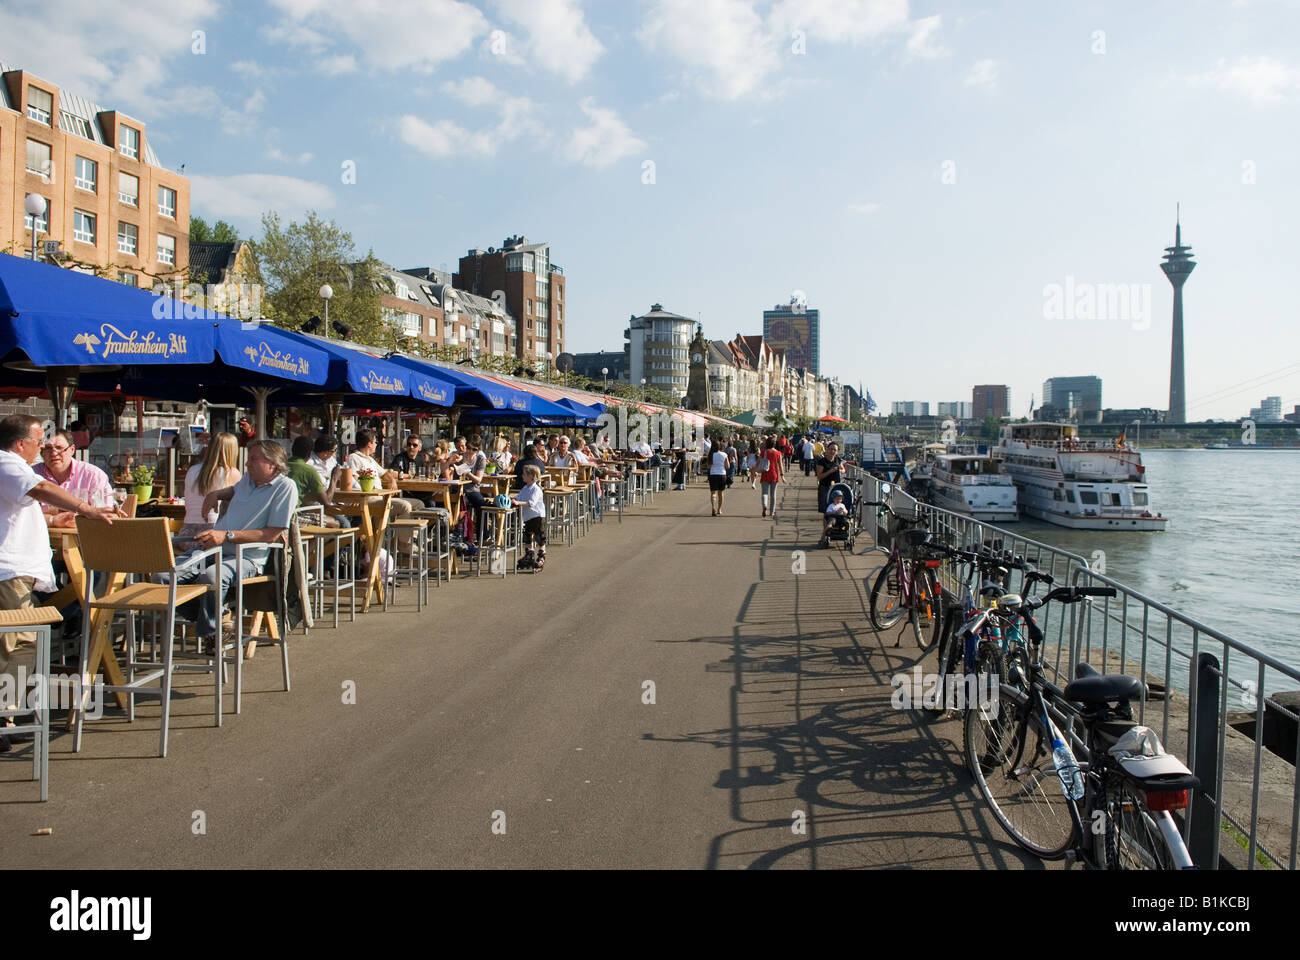 outdoor Pubs on the Riverside promenade of the Rhein River in Duesseldorf Germany - Stock Image